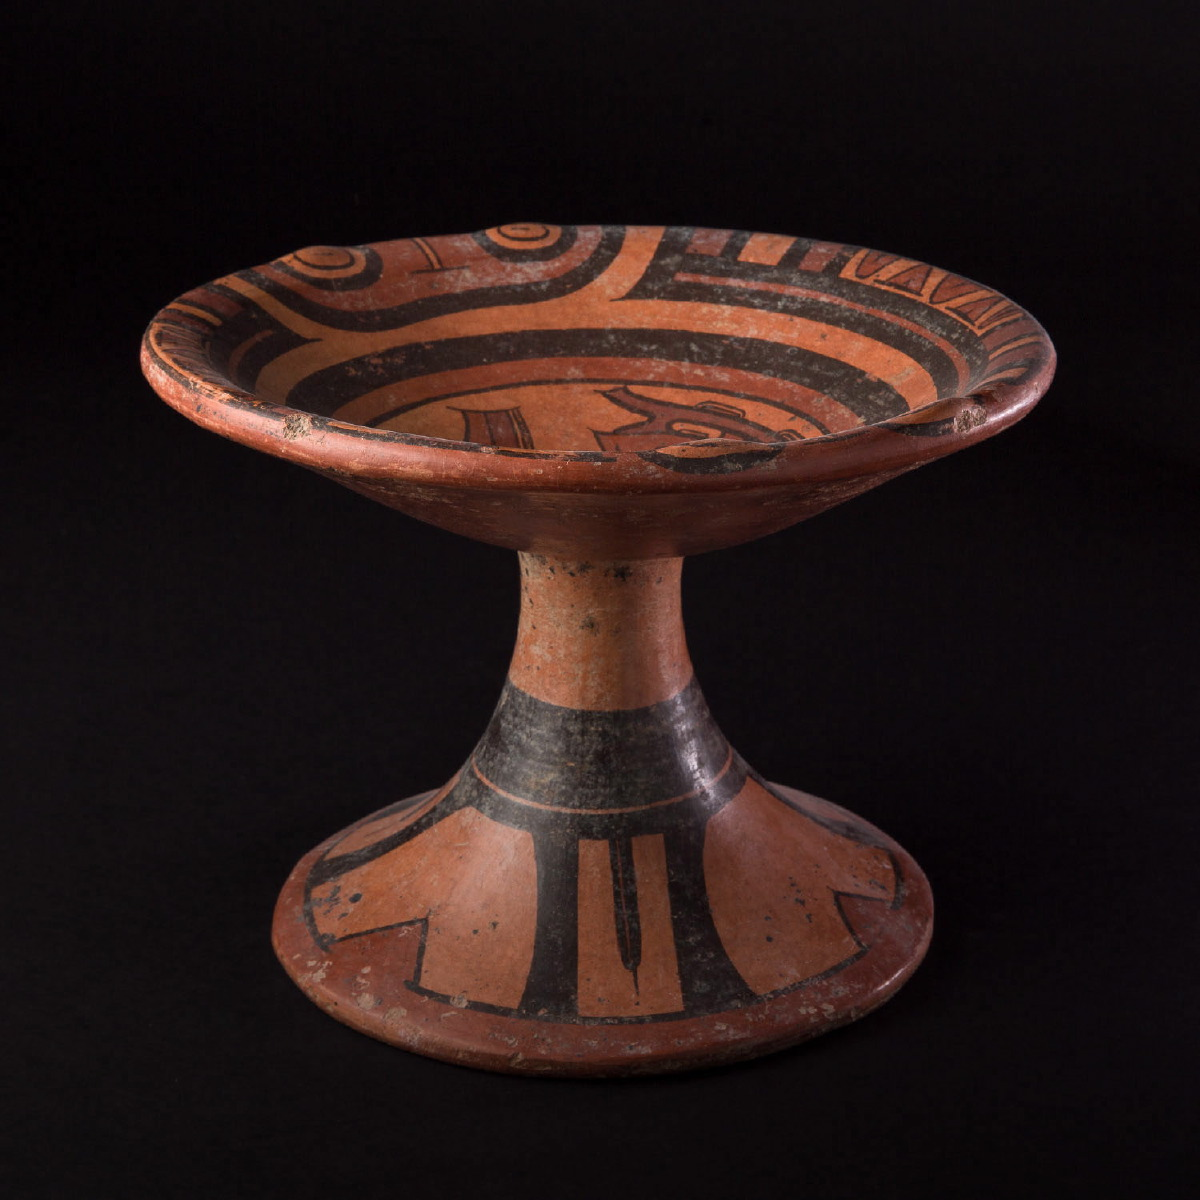 Photo of cocle-footed-plate-panama-year-1000-galerie-golconda-museum